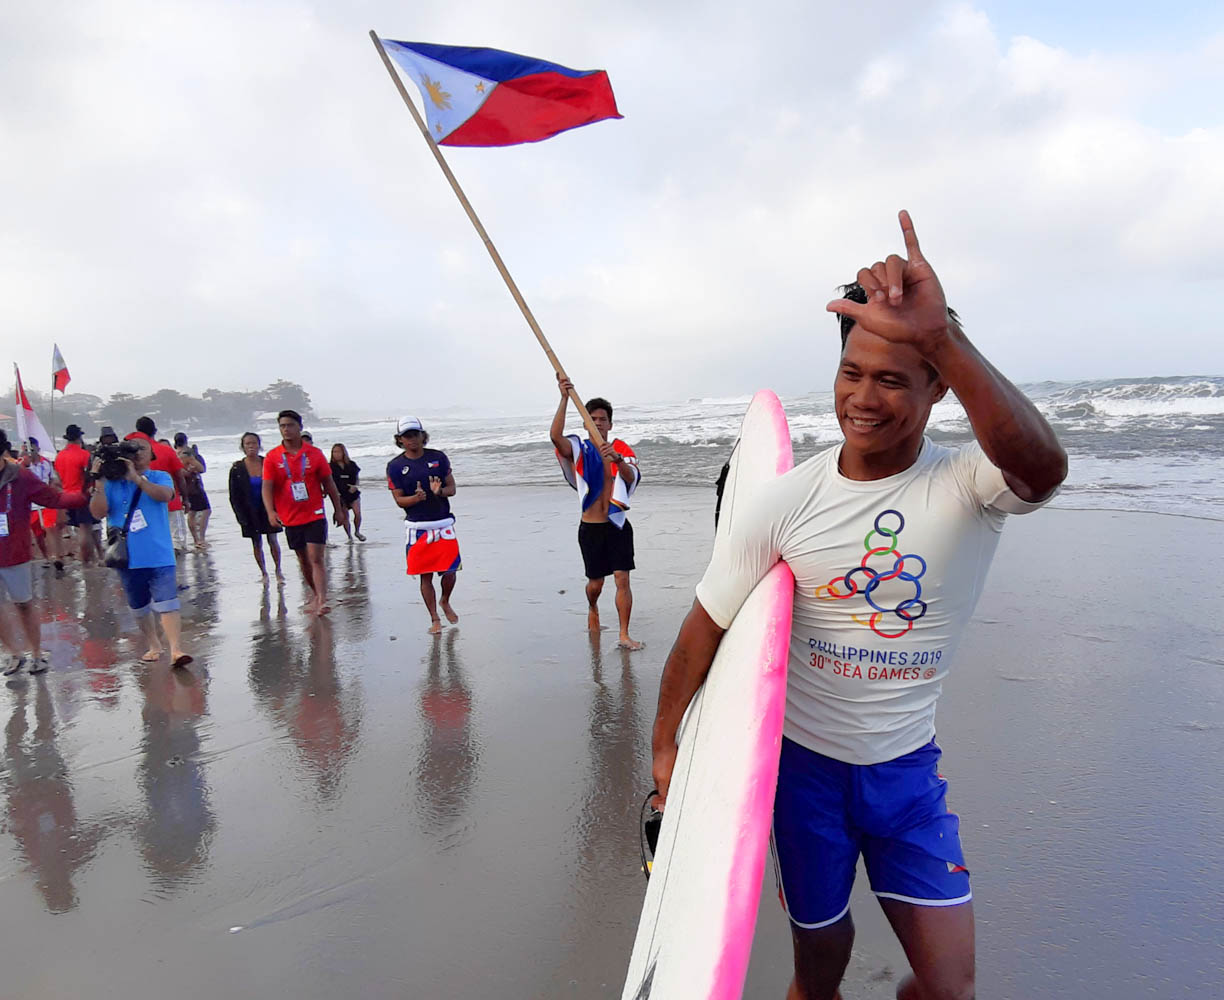 Hero surfer Casugay beats Indonesian he saved before golden ride